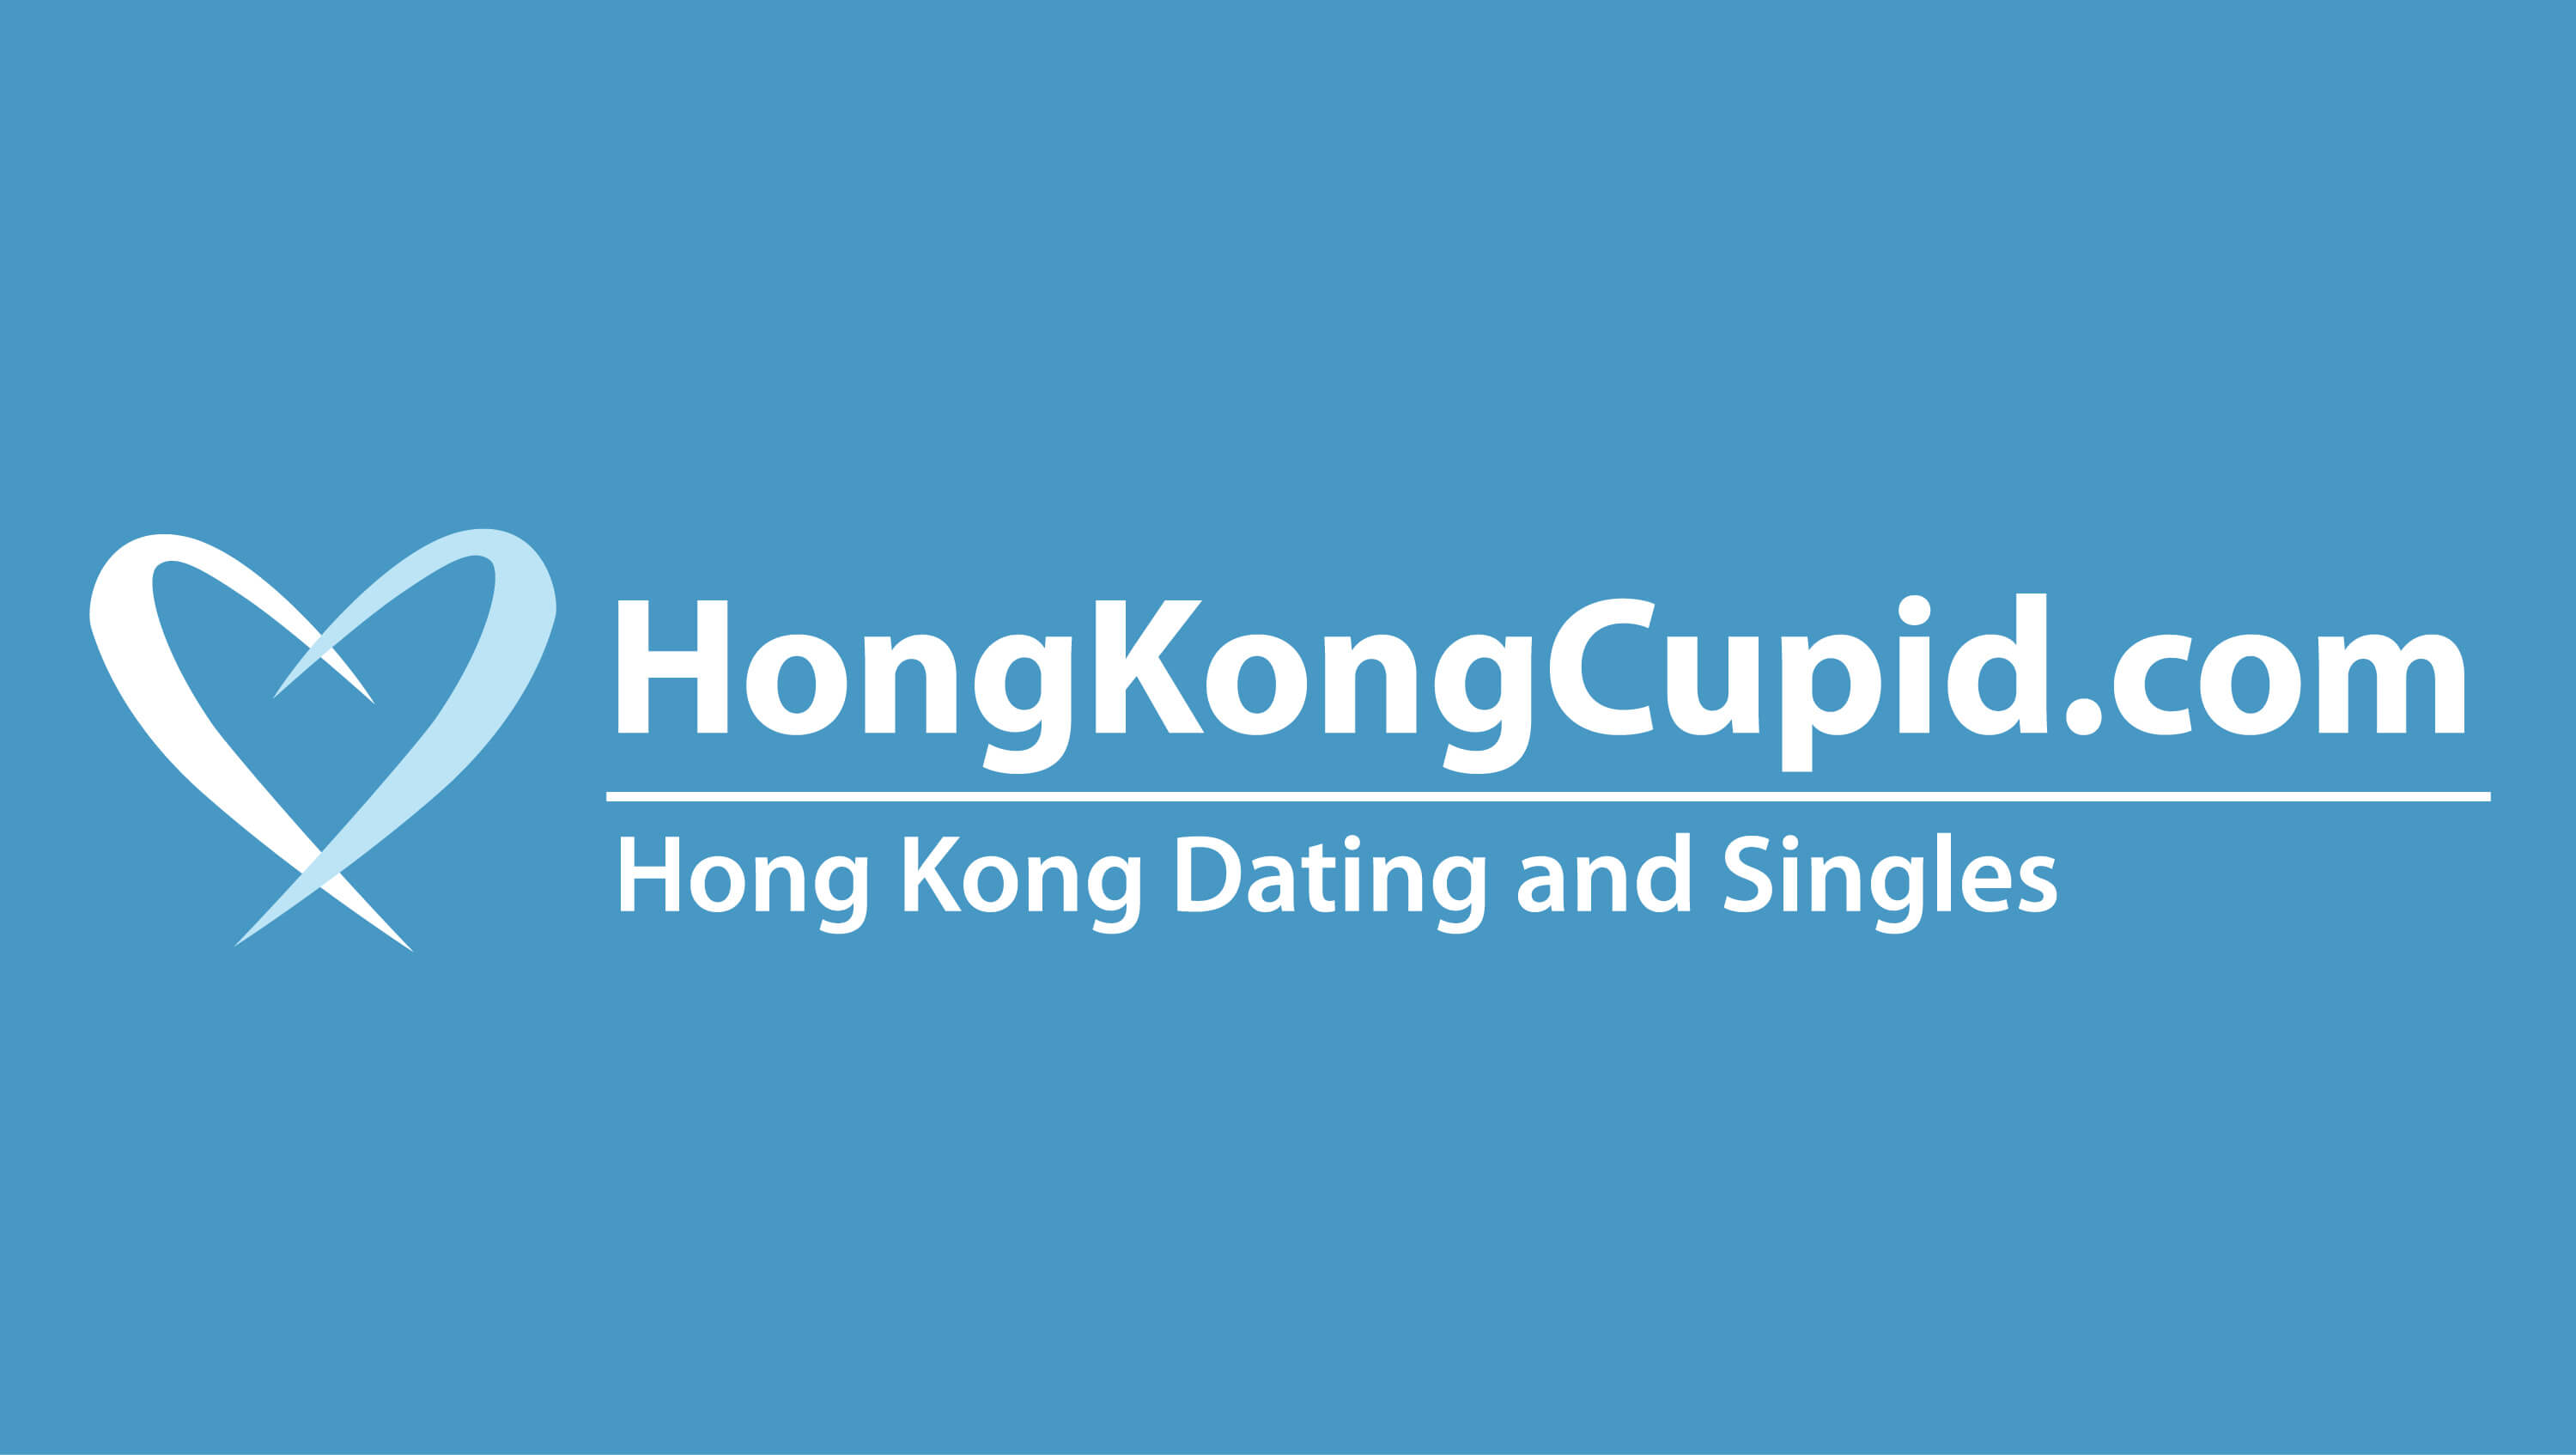 Hong Kong Cupid